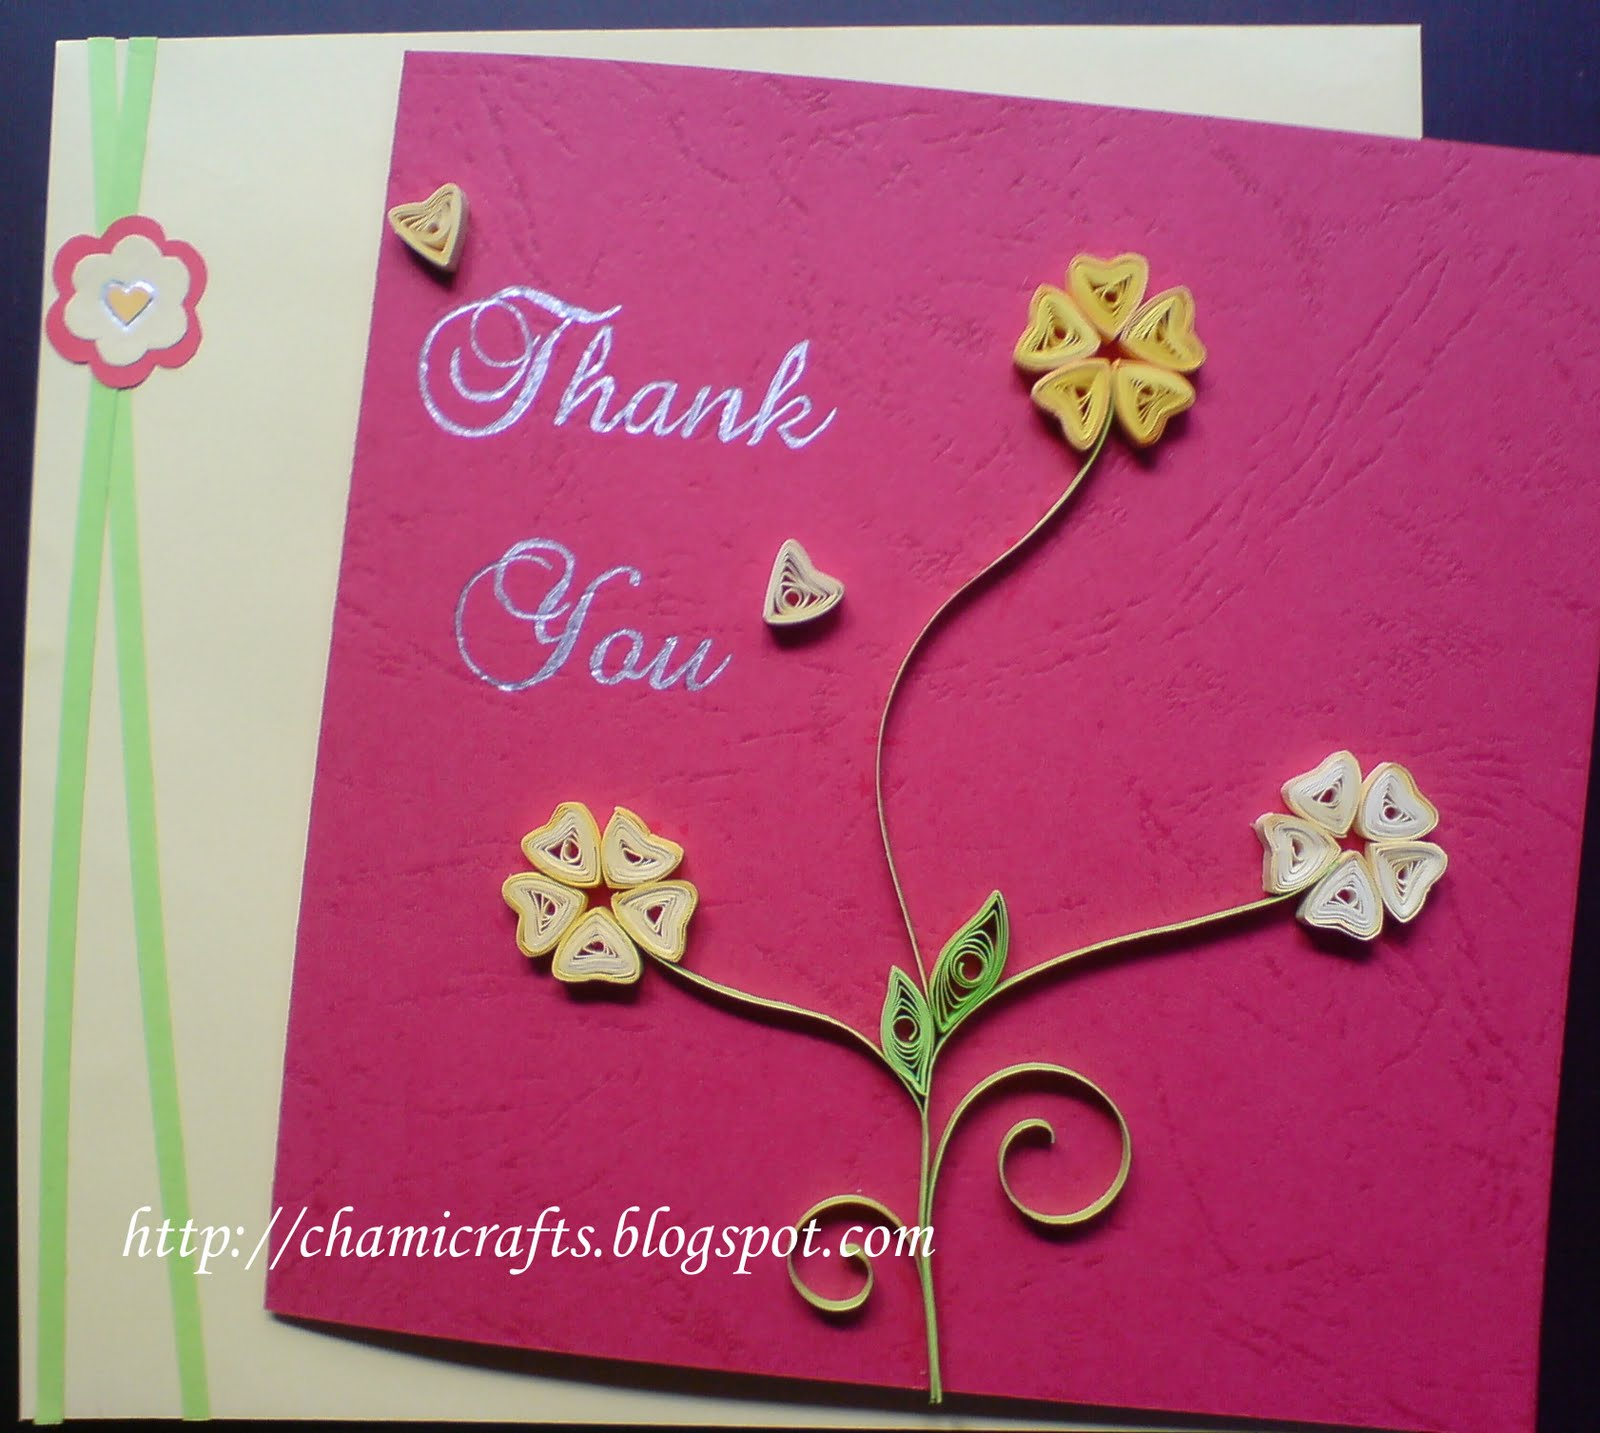 Chami crafts handmade greeting cards quilled thank you card tc001r kristyandbryce Image collections